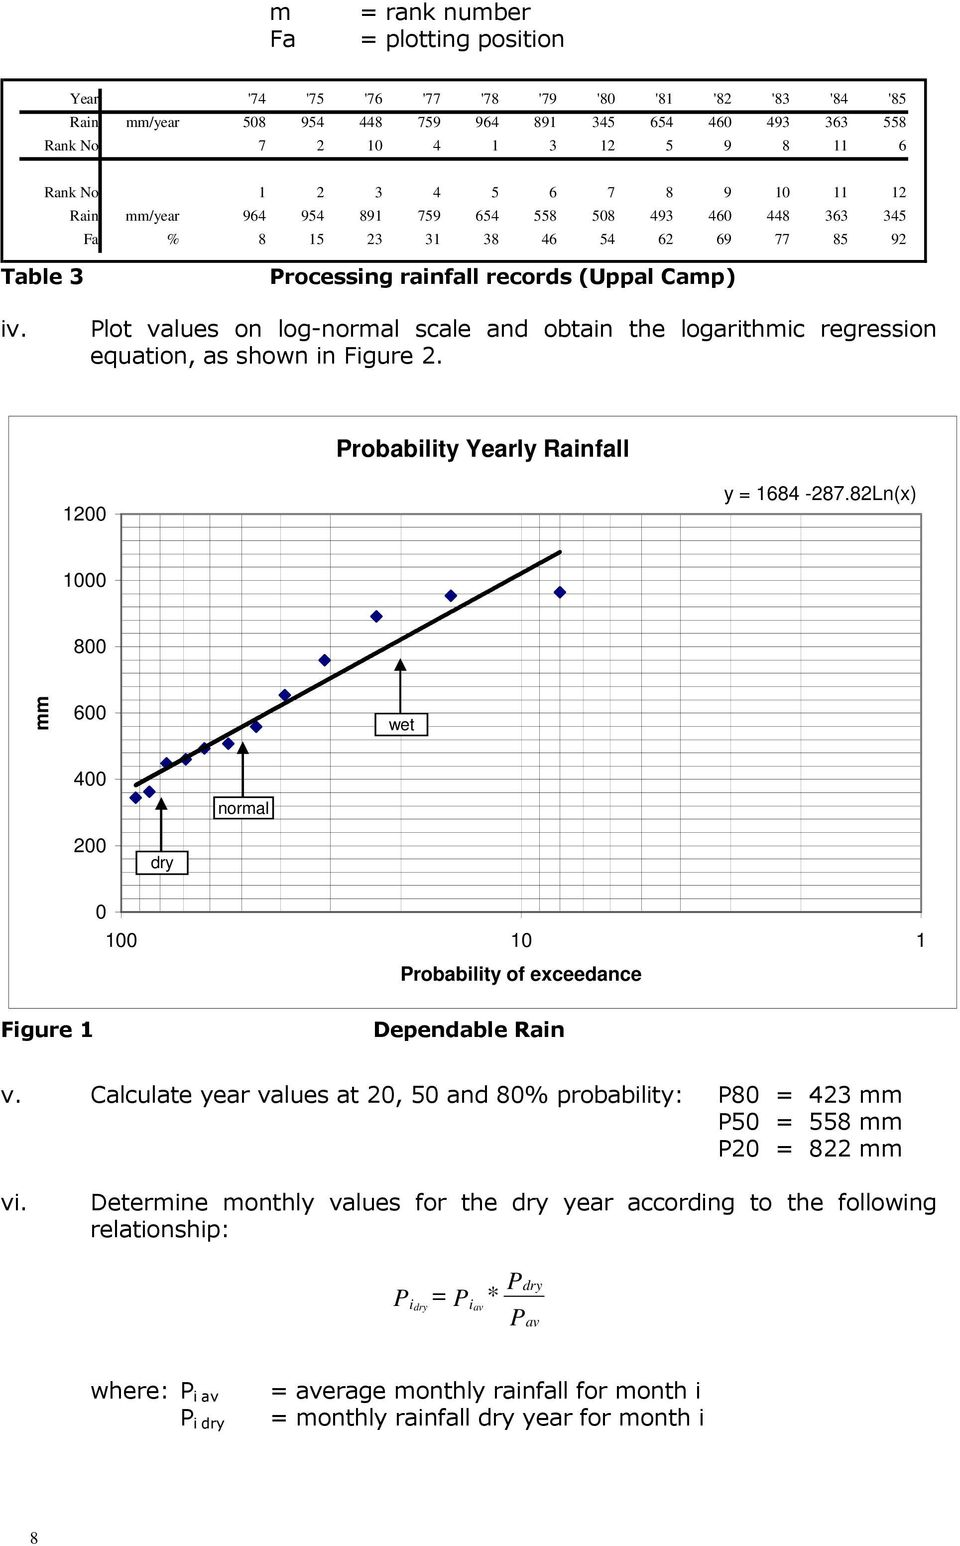 Processing rainfall records (Uppal Camp) Plot values on log-normal scale and obtain the logarithmic regression equation, as shown in Figure 2. Probability Yearly Rainfall 1200 y = 1684-287.